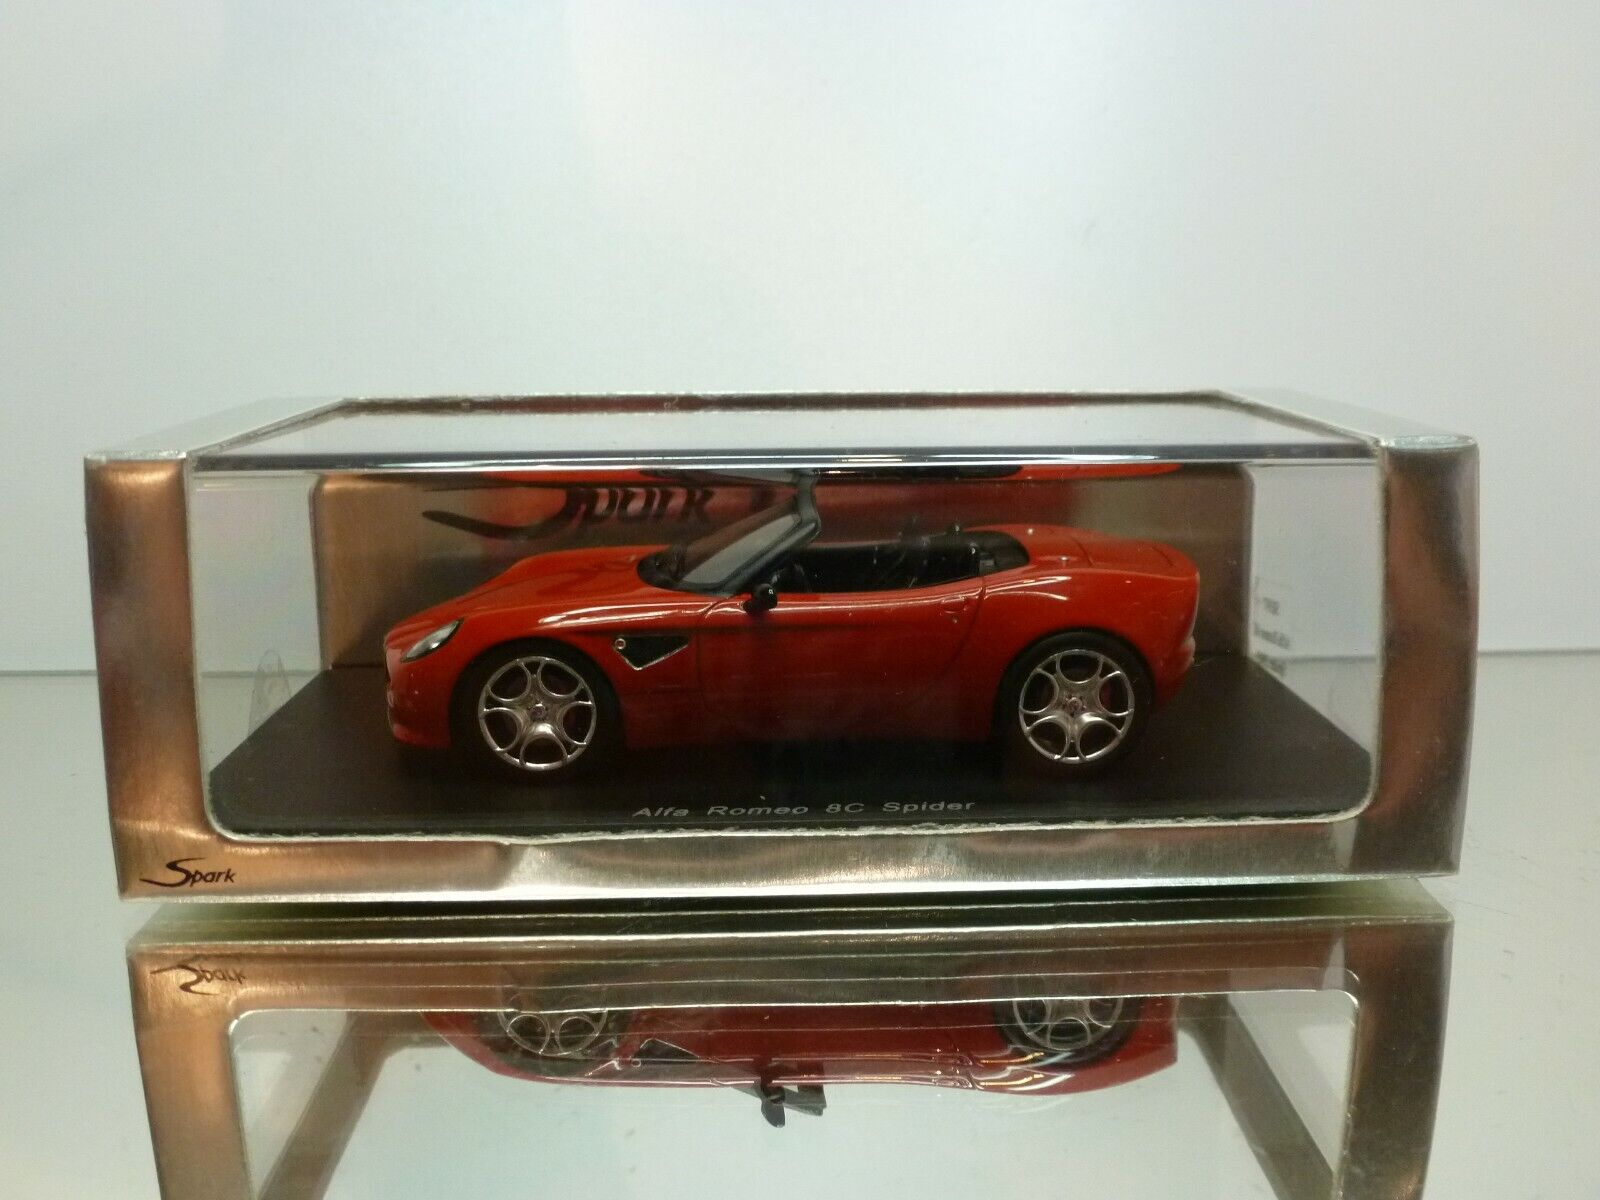 SPARK S0397 ALFA ROMEO 8C SPYDER 2005 - RED  1:43 - EXCELLENT IN BOX